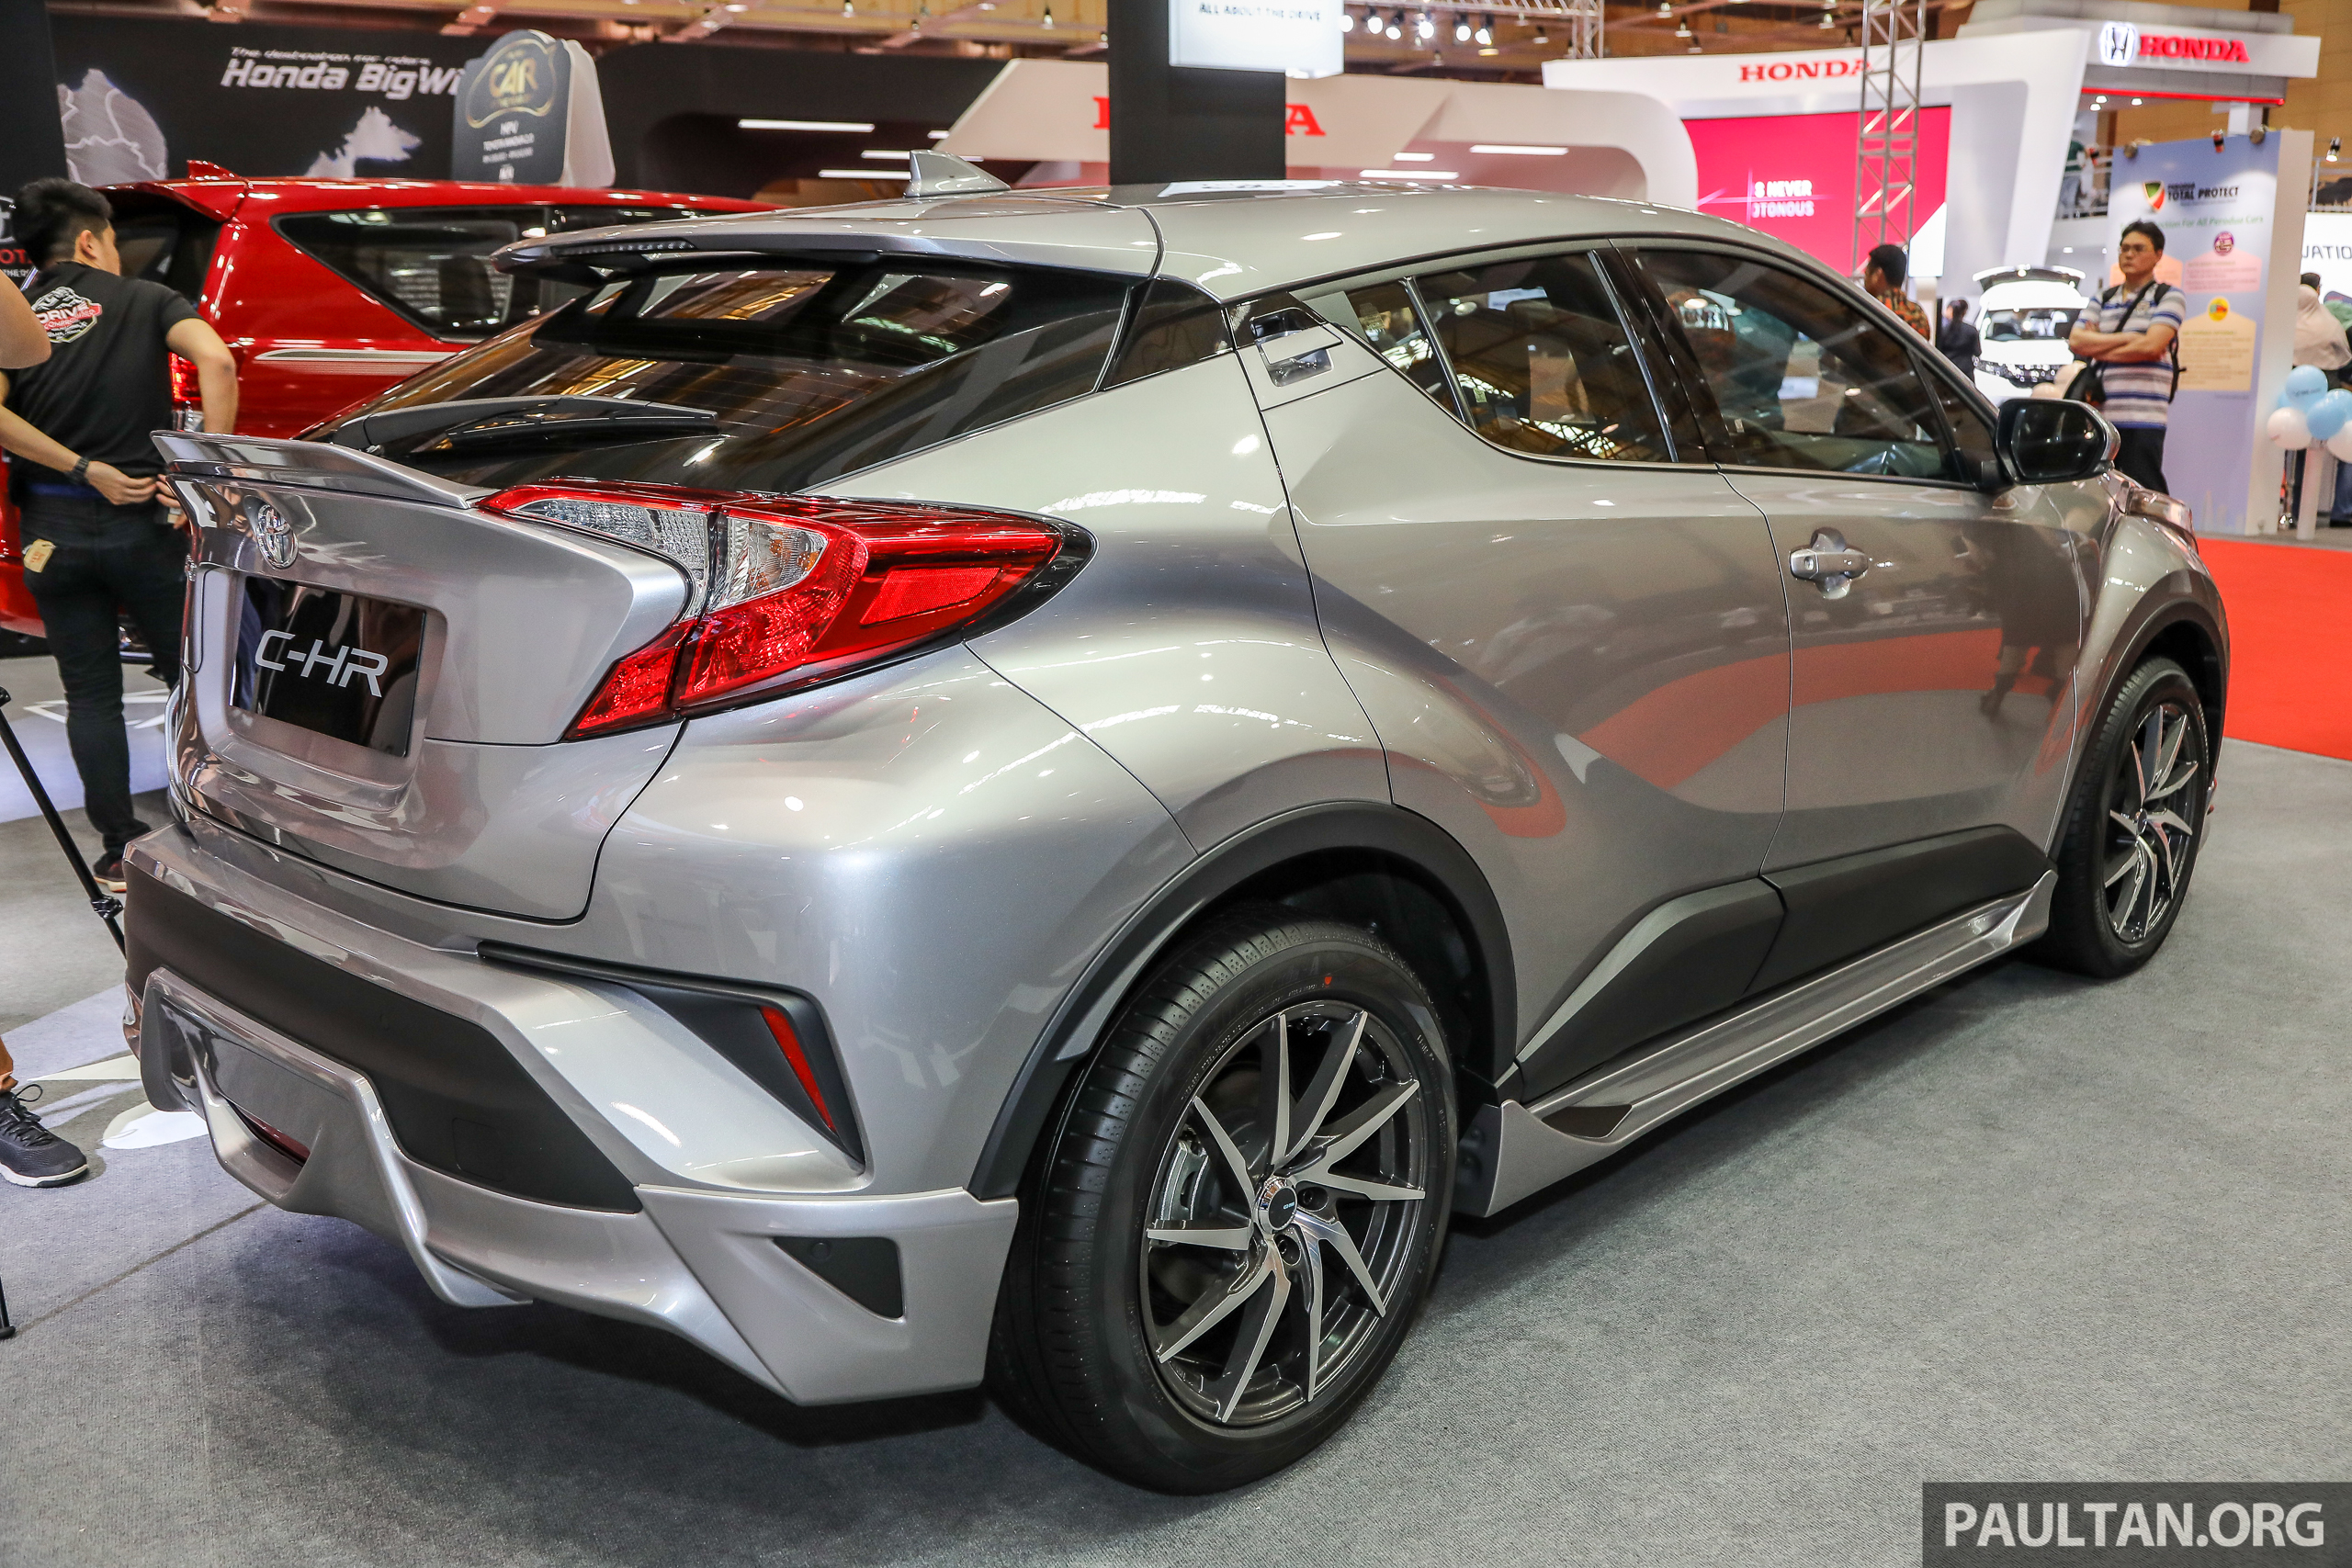 Chr Toyota Malaysia >> Toyota C-HR Malaysian spec previewed – CBU from Thailand, 141 PS 1.8 litre NA engine, 2018 ...